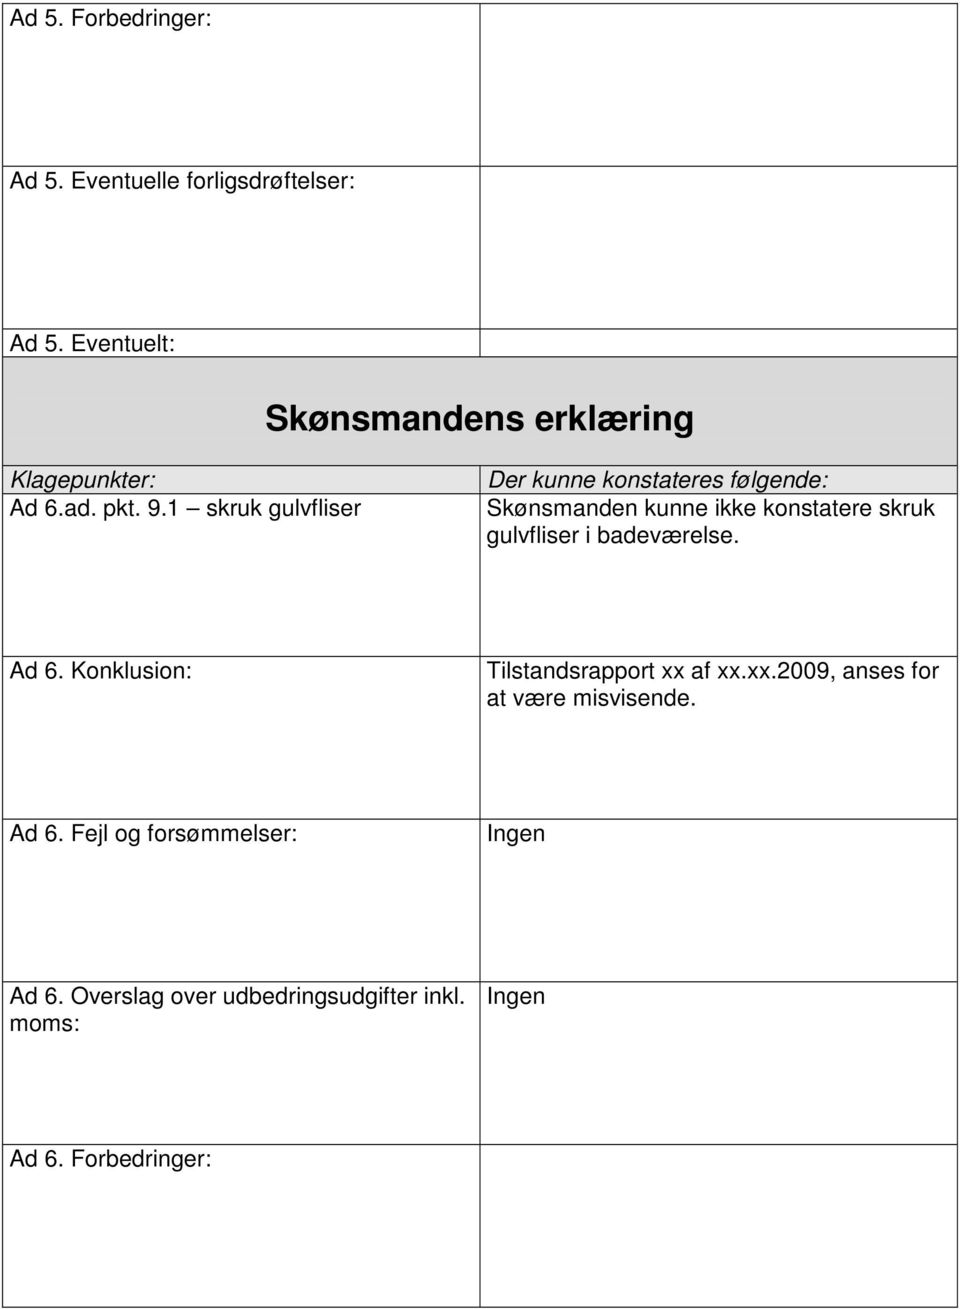 Ad 6. Konklusion: Tilstandsrapport xx af xx.xx.2009, anses for at være misvisende. Ad 6.